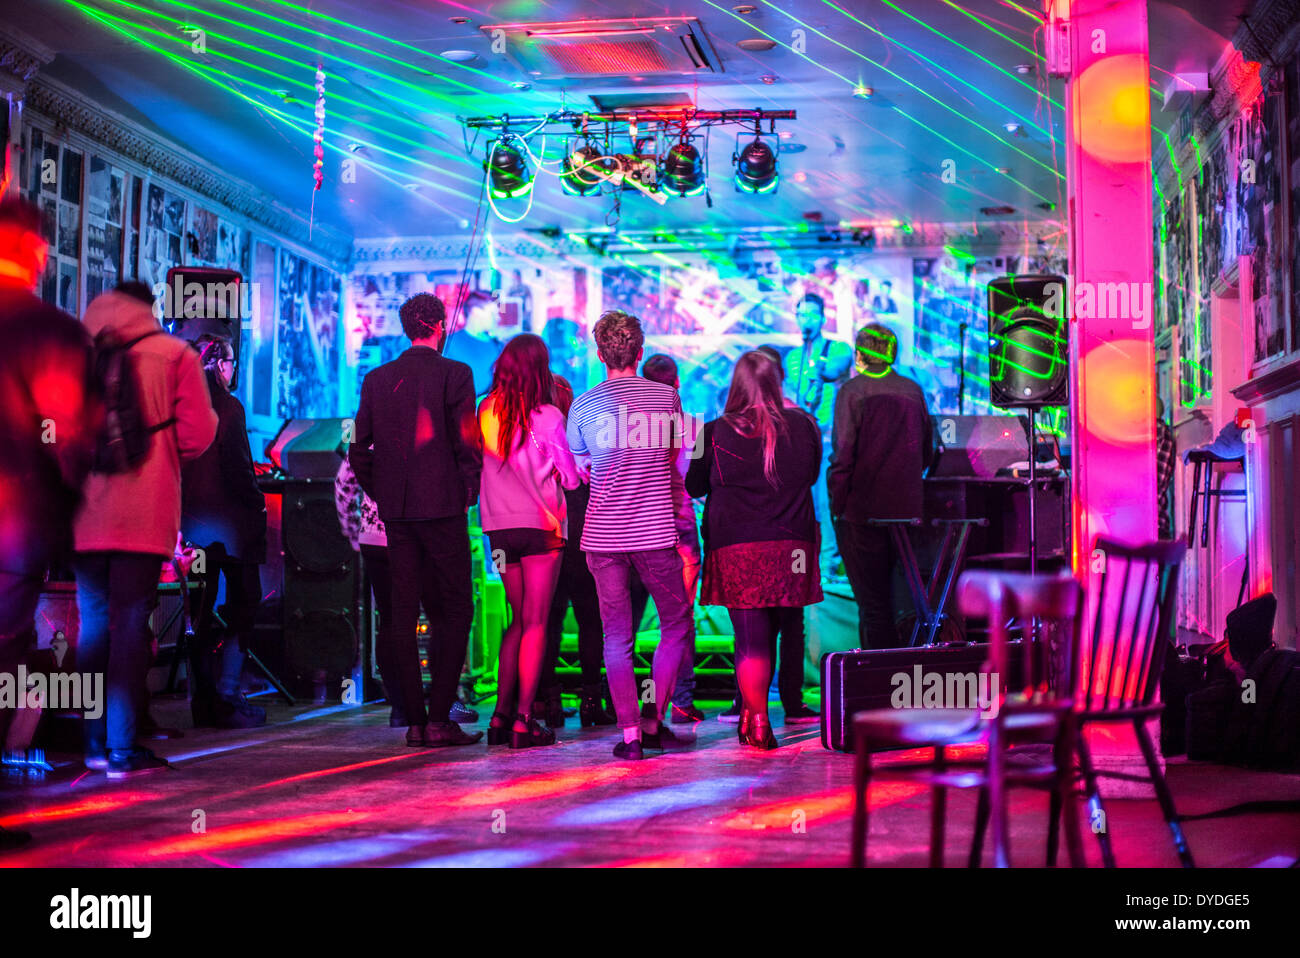 Watching a live performance in a small bar. - Stock Image